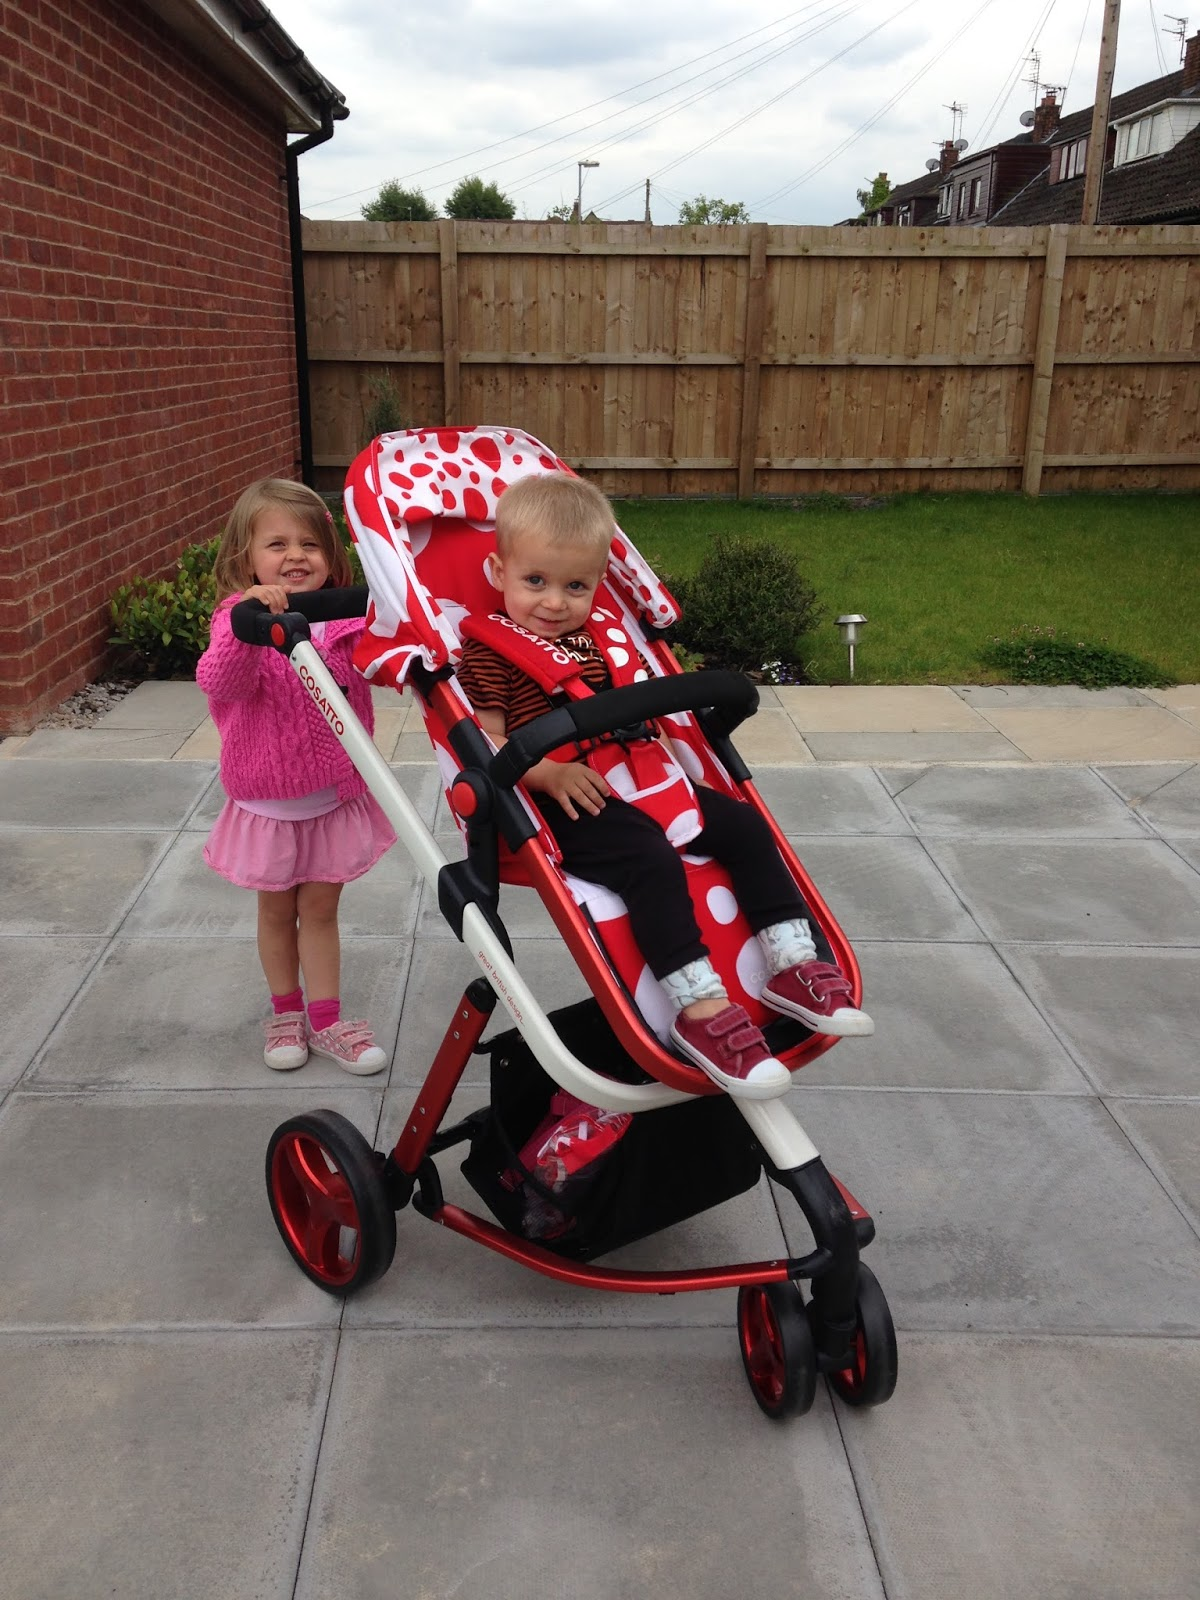 Lightweight Off Road Pram Review Cosatto Giggle 3 In 1 Travel System Hollybobb 39;s